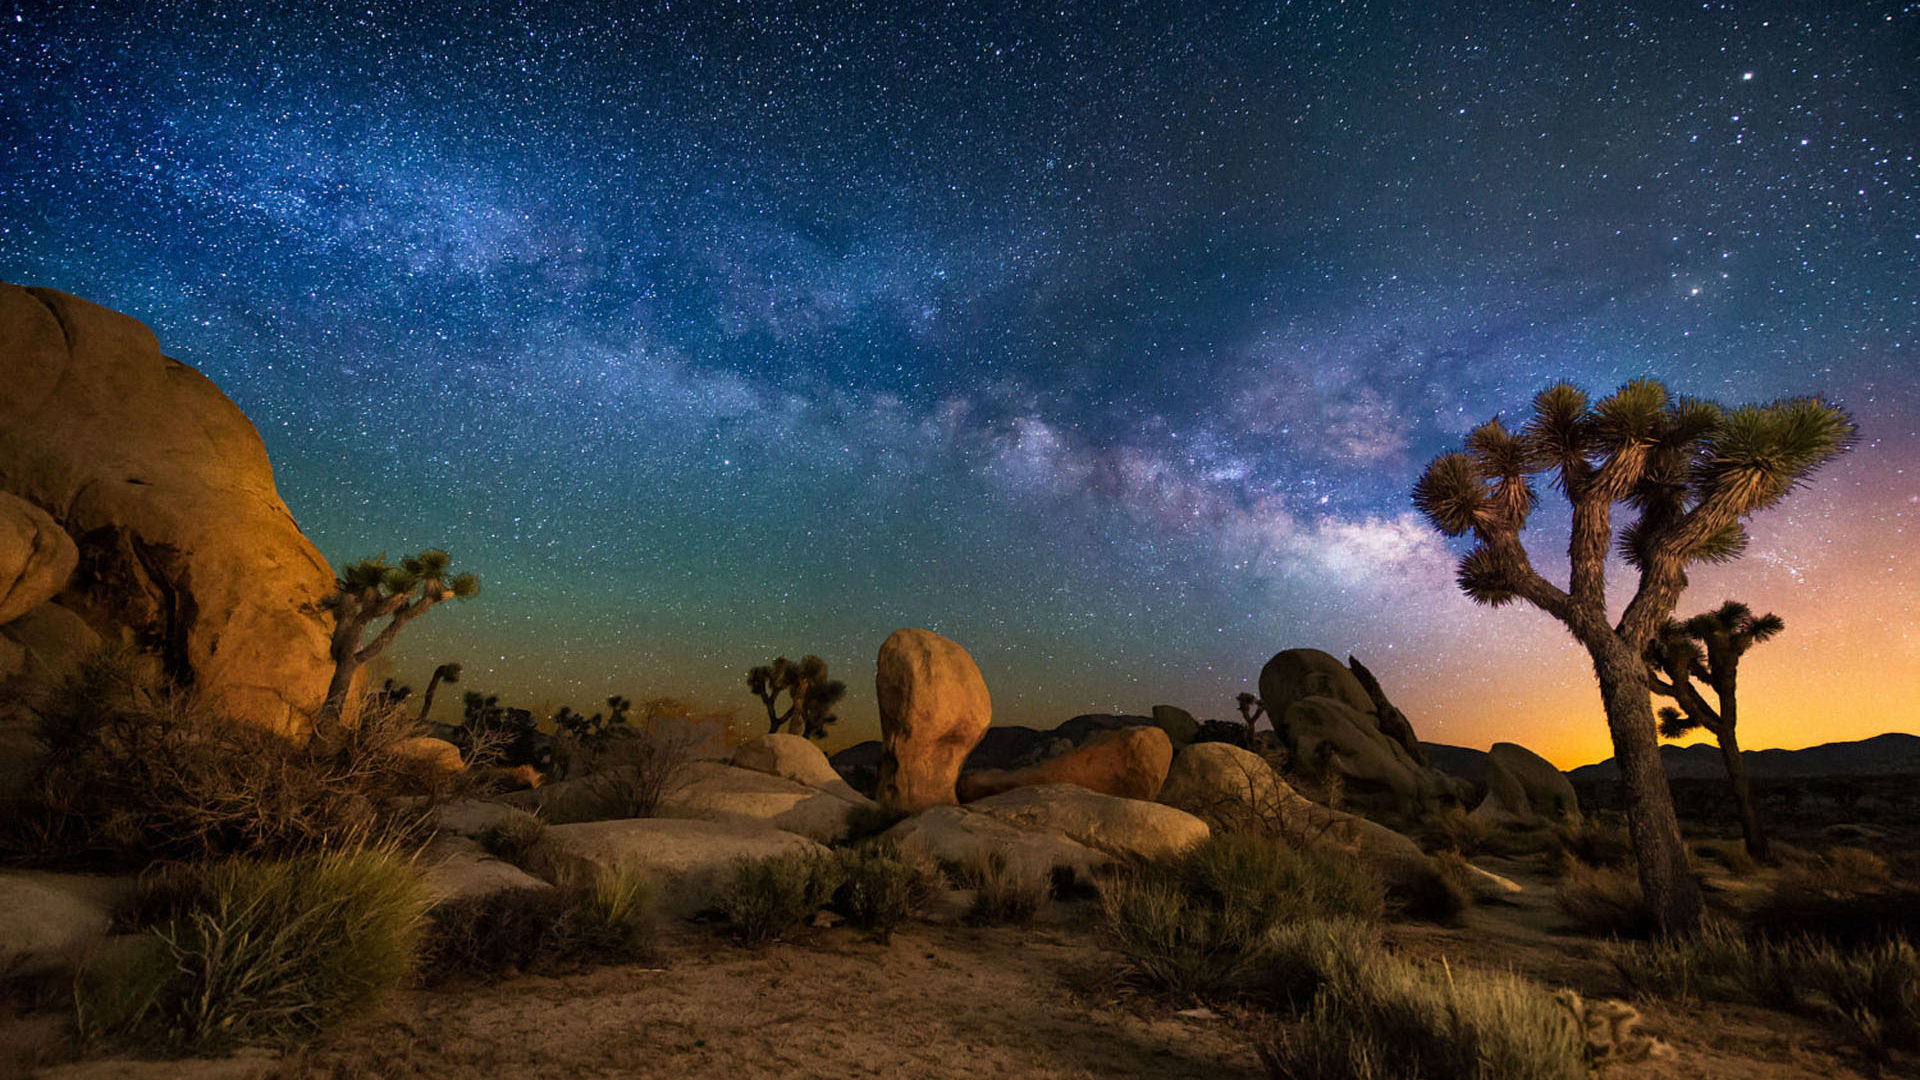 Clear Wallpaper Iphone X Starry Sky Desert Area Night In Joshua Tree National Park